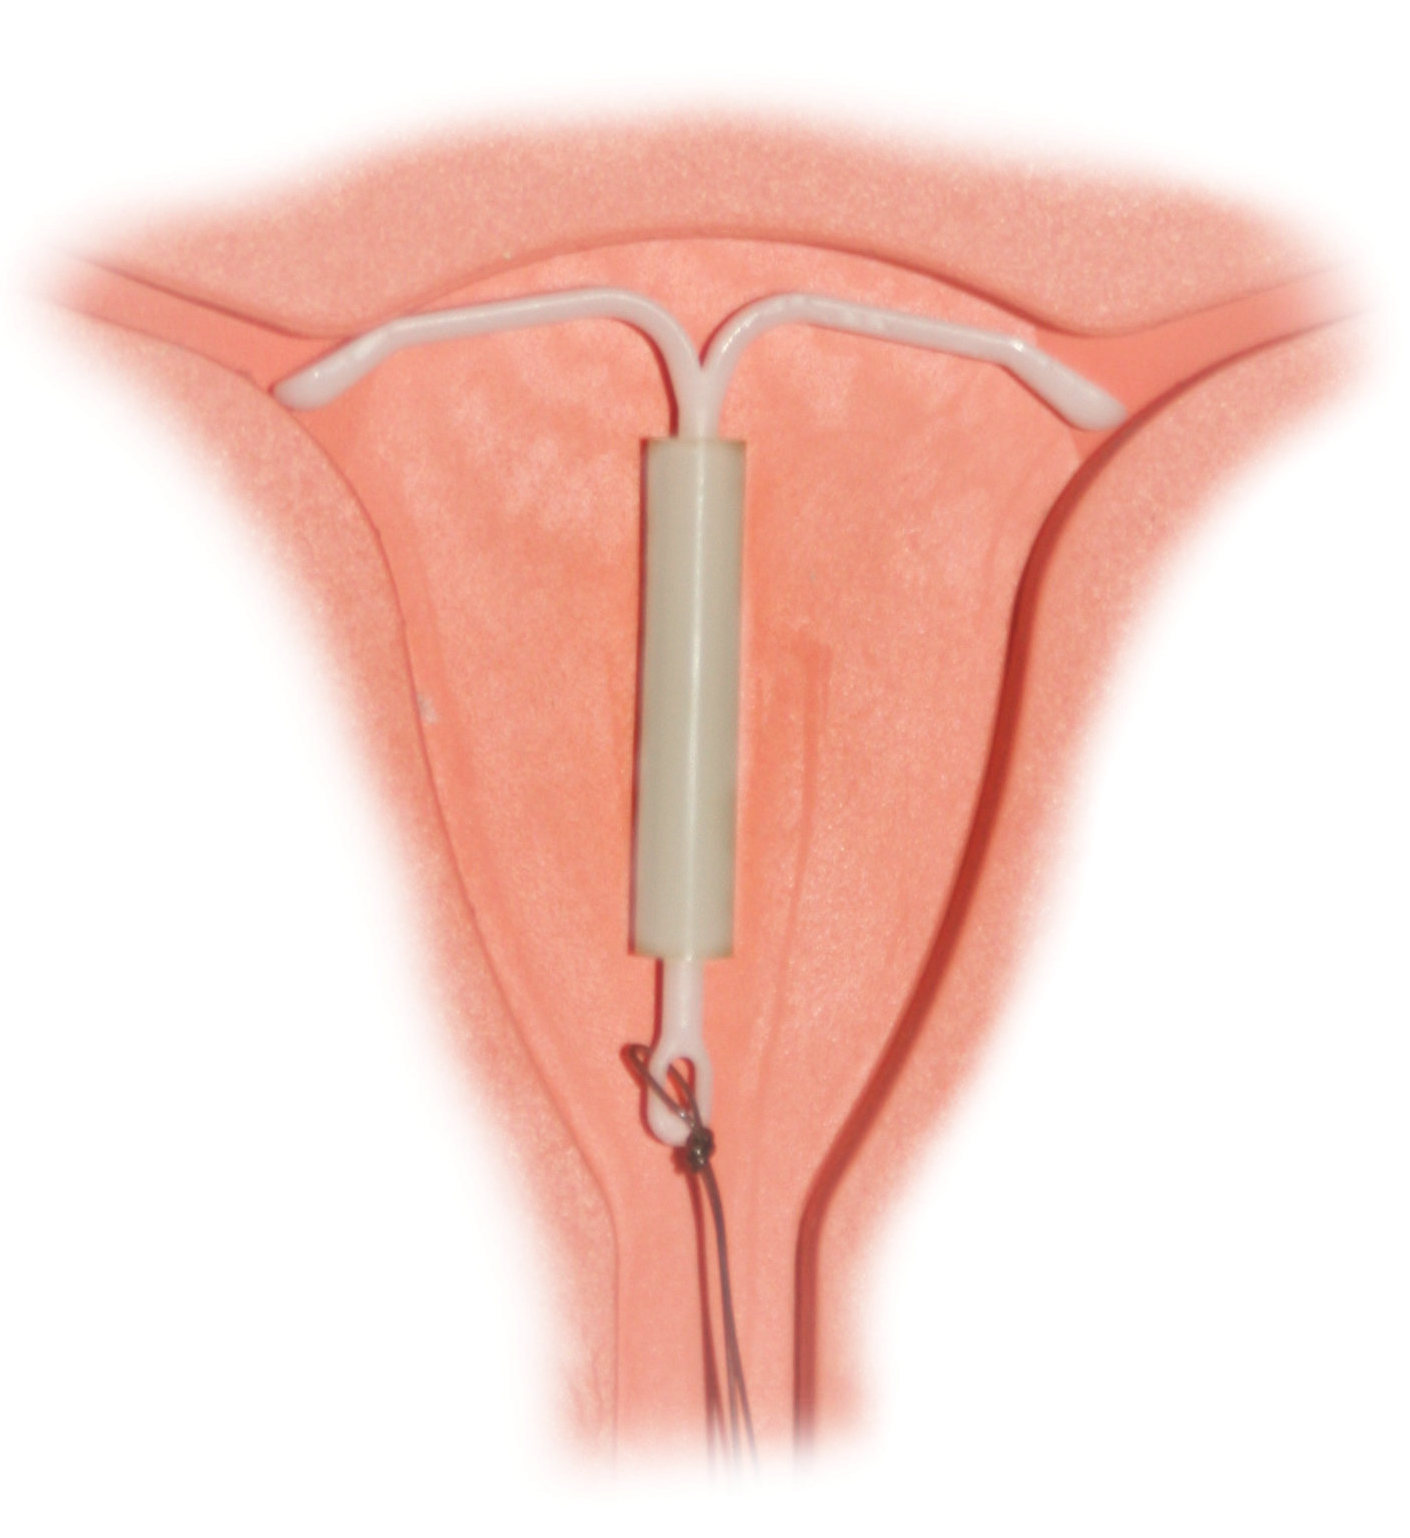 Painful sex iud